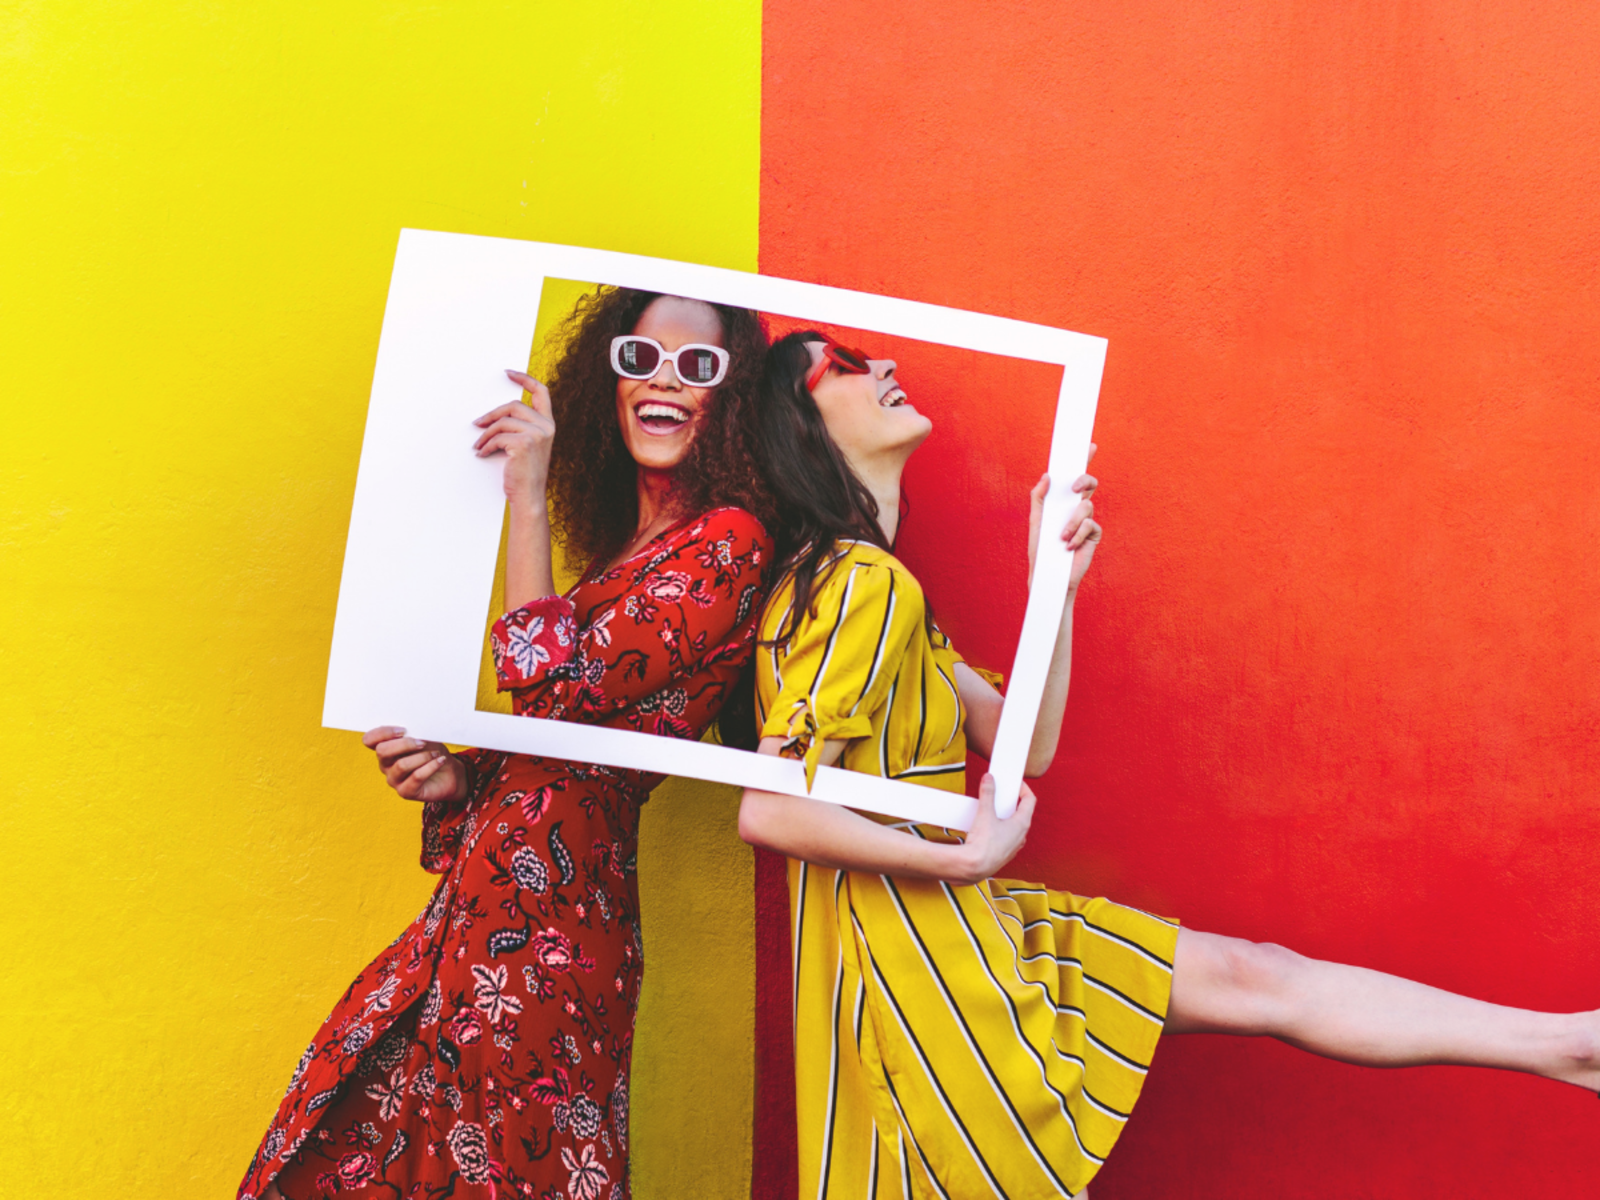 Instagram is the Right Platform to Build your Brand Image